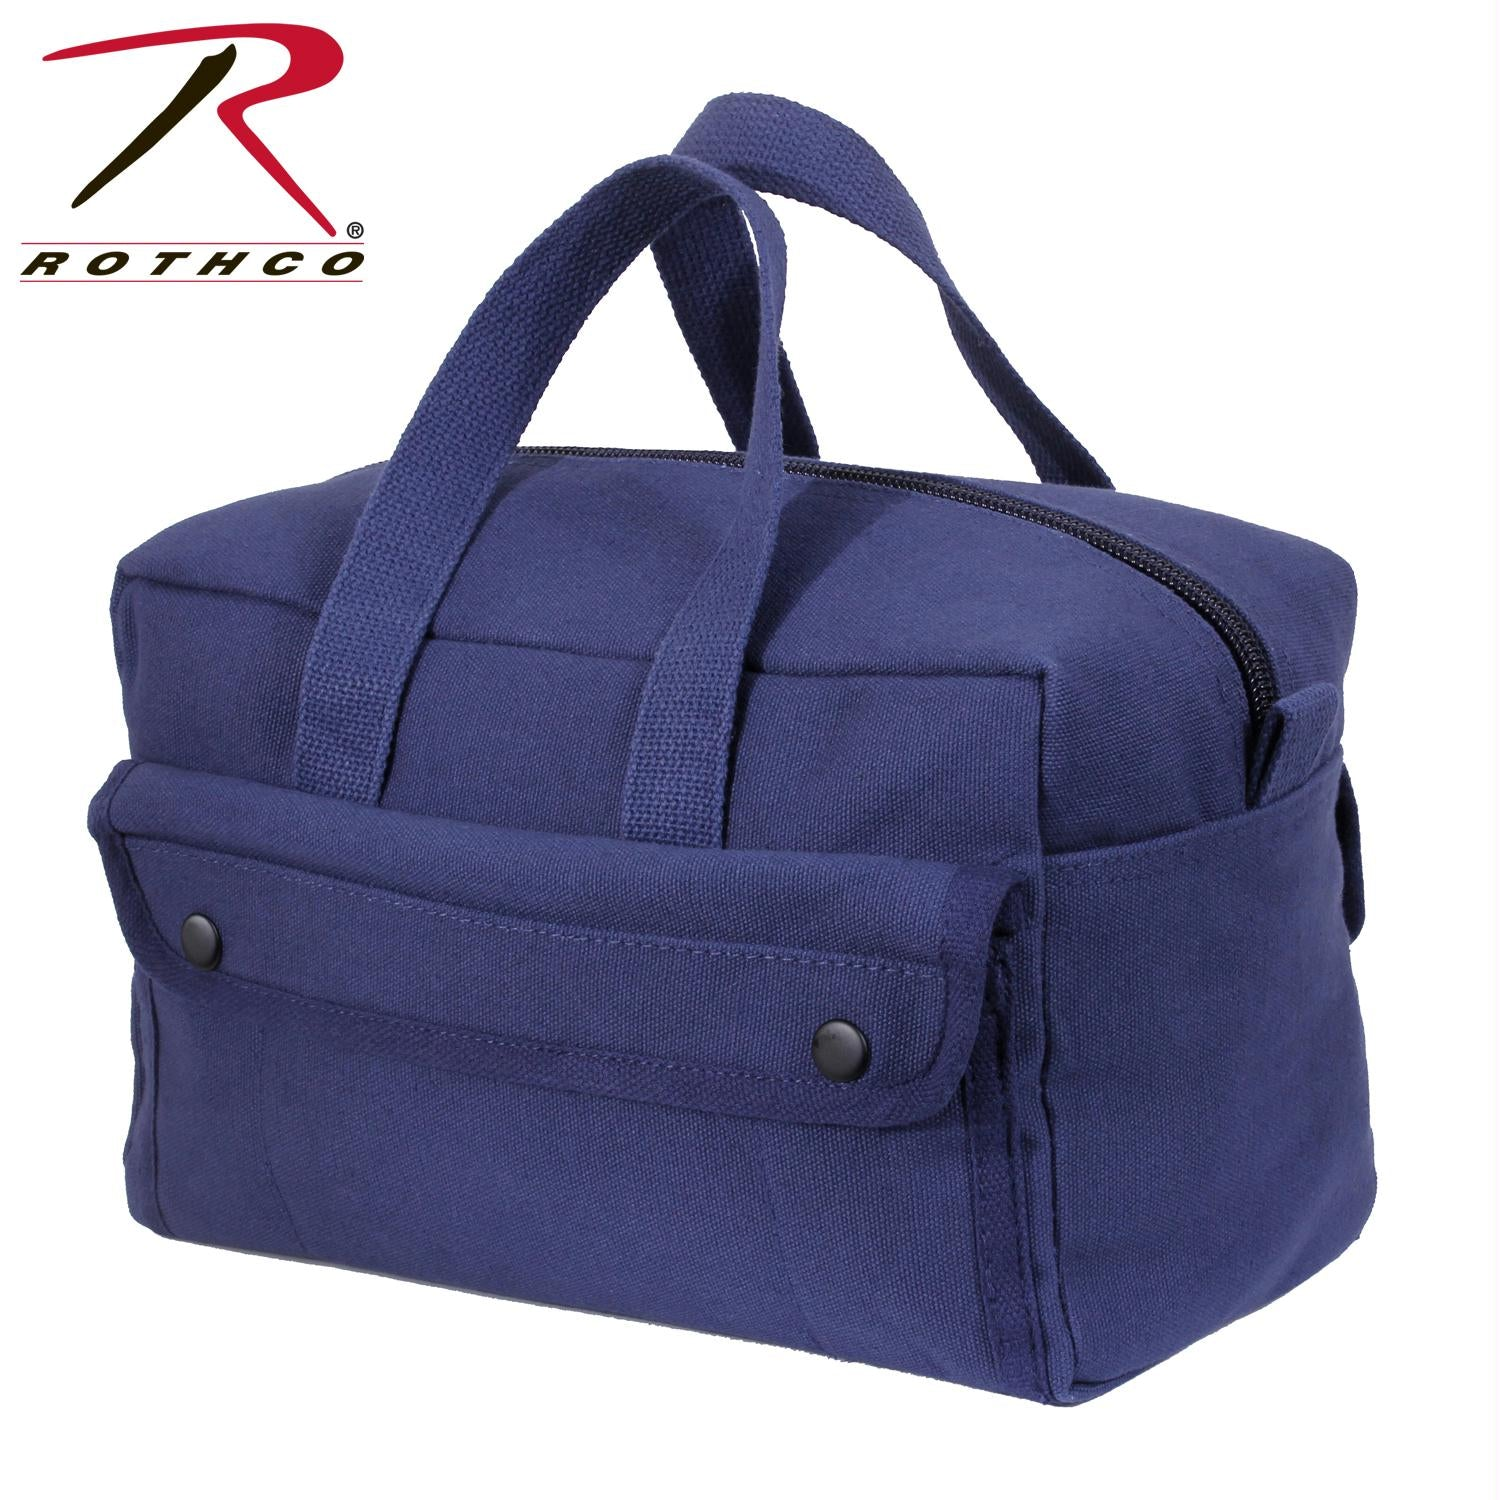 Rothco G.I. Type Mechanics Tool Bags - Navy Blue